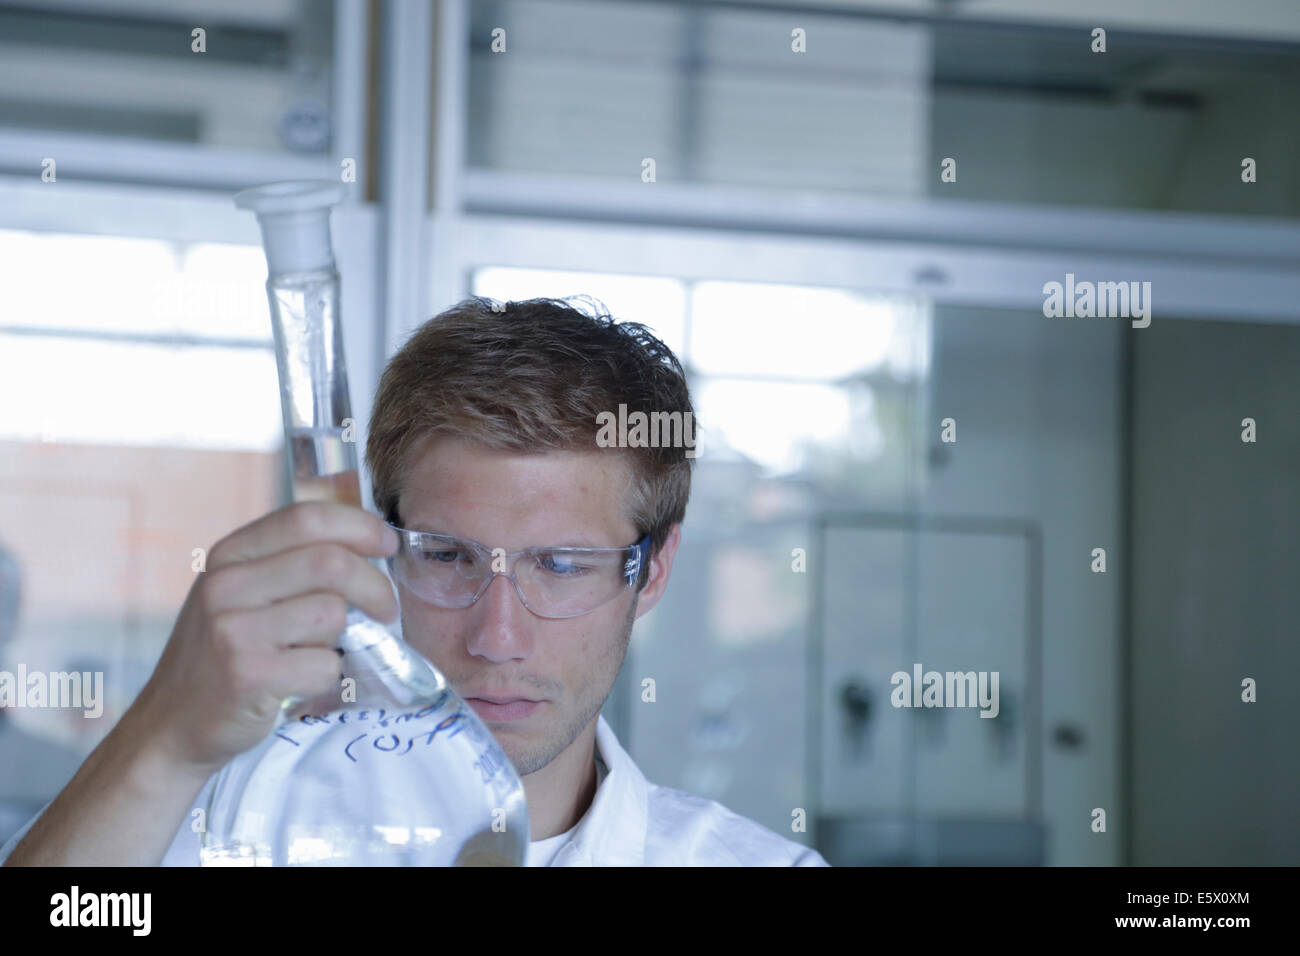 Young male scientist analyzing volumetric flask in lab - Stock Image